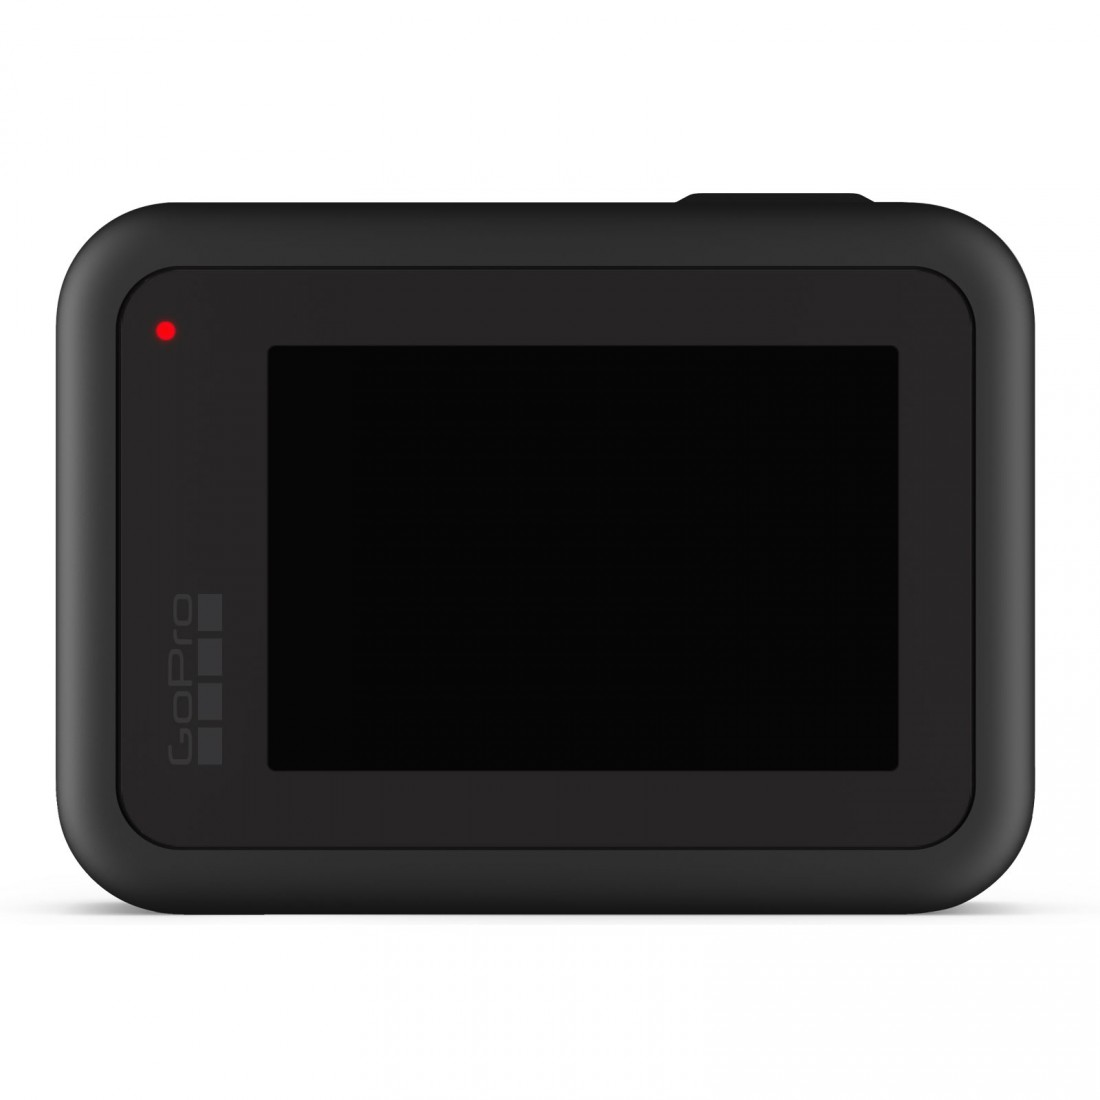 GoPro Hero 8 BLACK- Cámara de acción, resolución 12 Mpx, WiFi, Bluetooth, GPS, pantalla táctil, color Negro